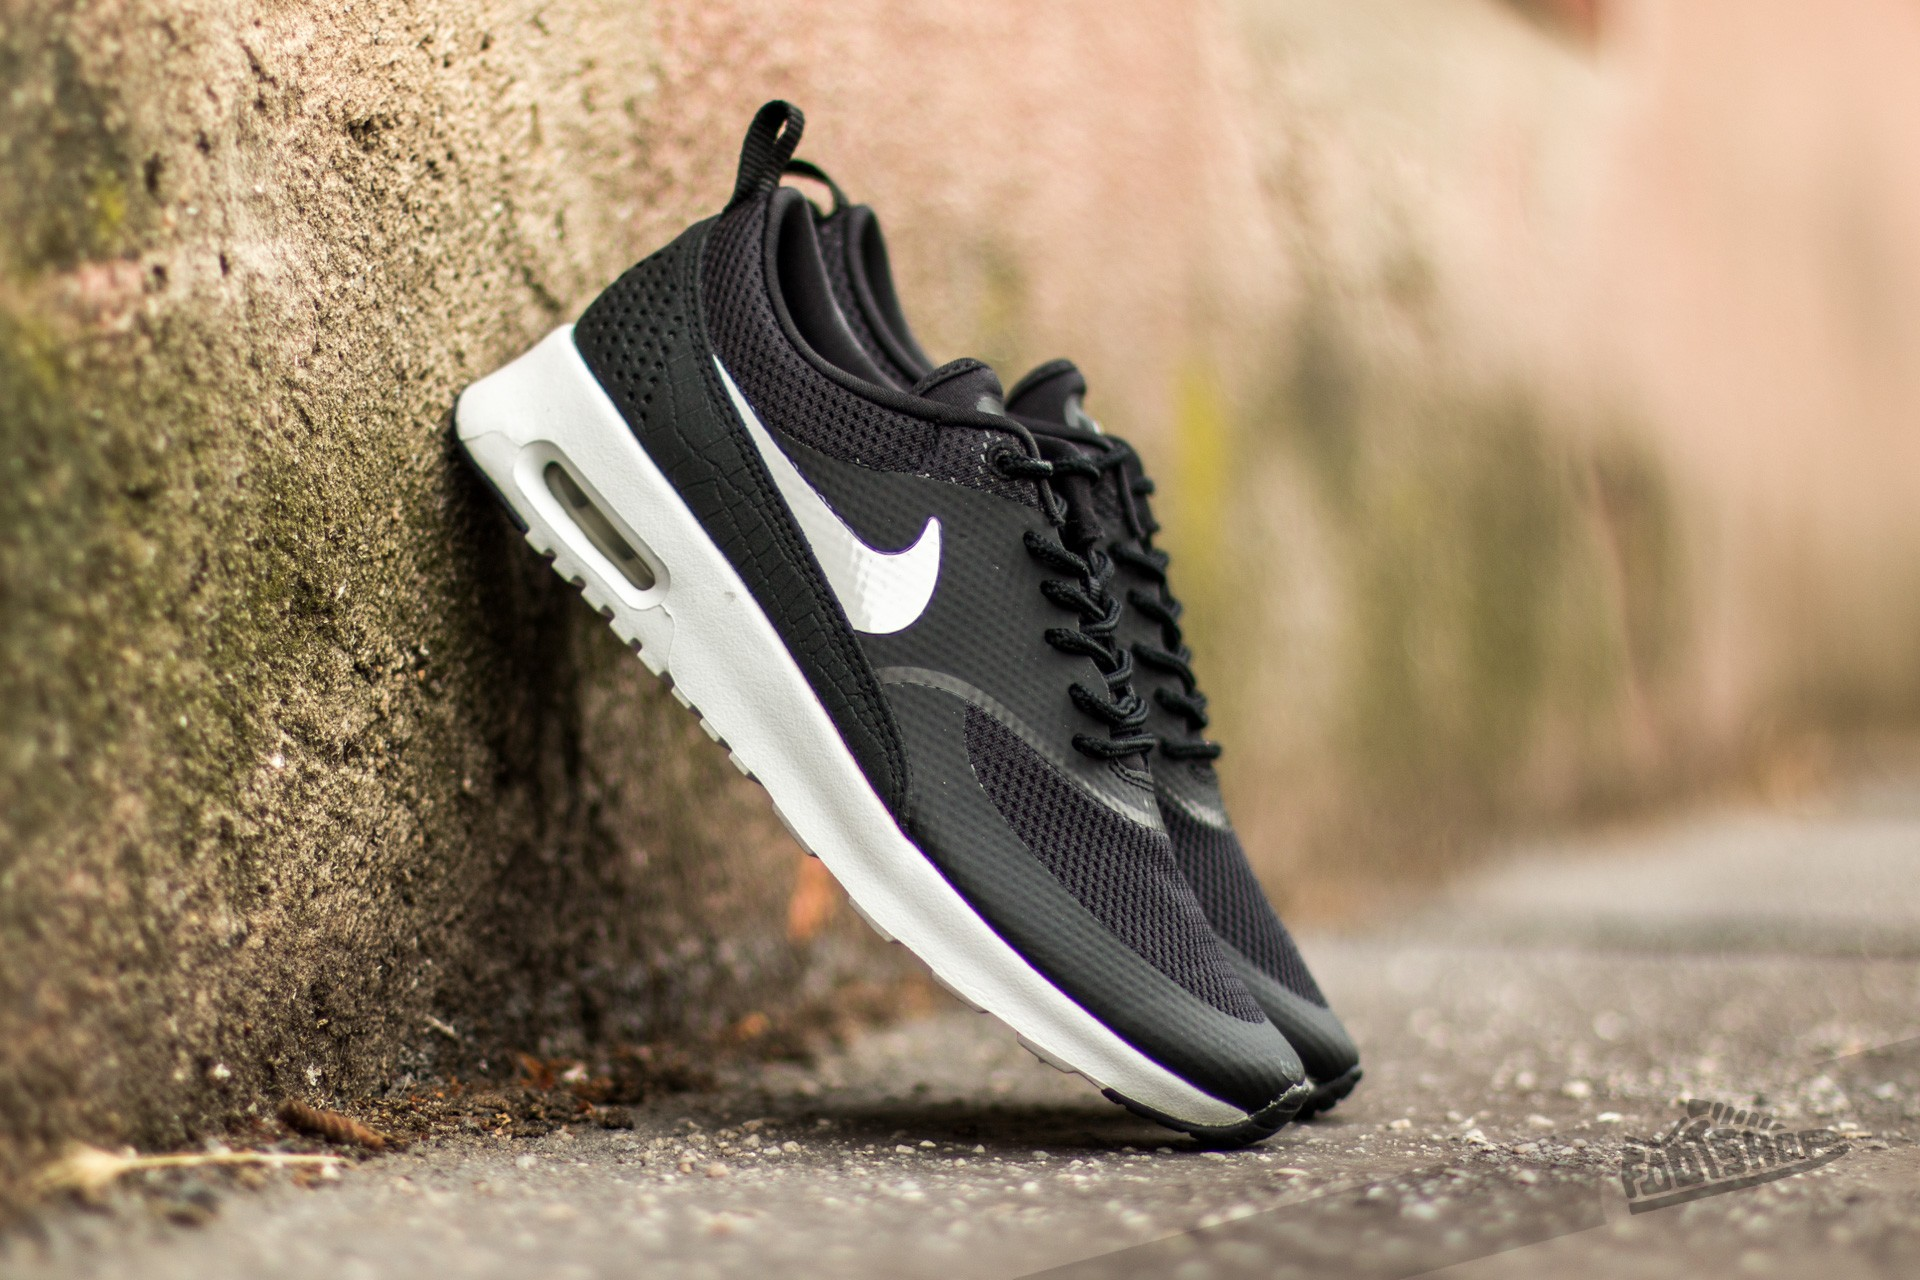 new arrivals 26c5f a9954 Nike Wmns Air Max Thea. Black  Summit White